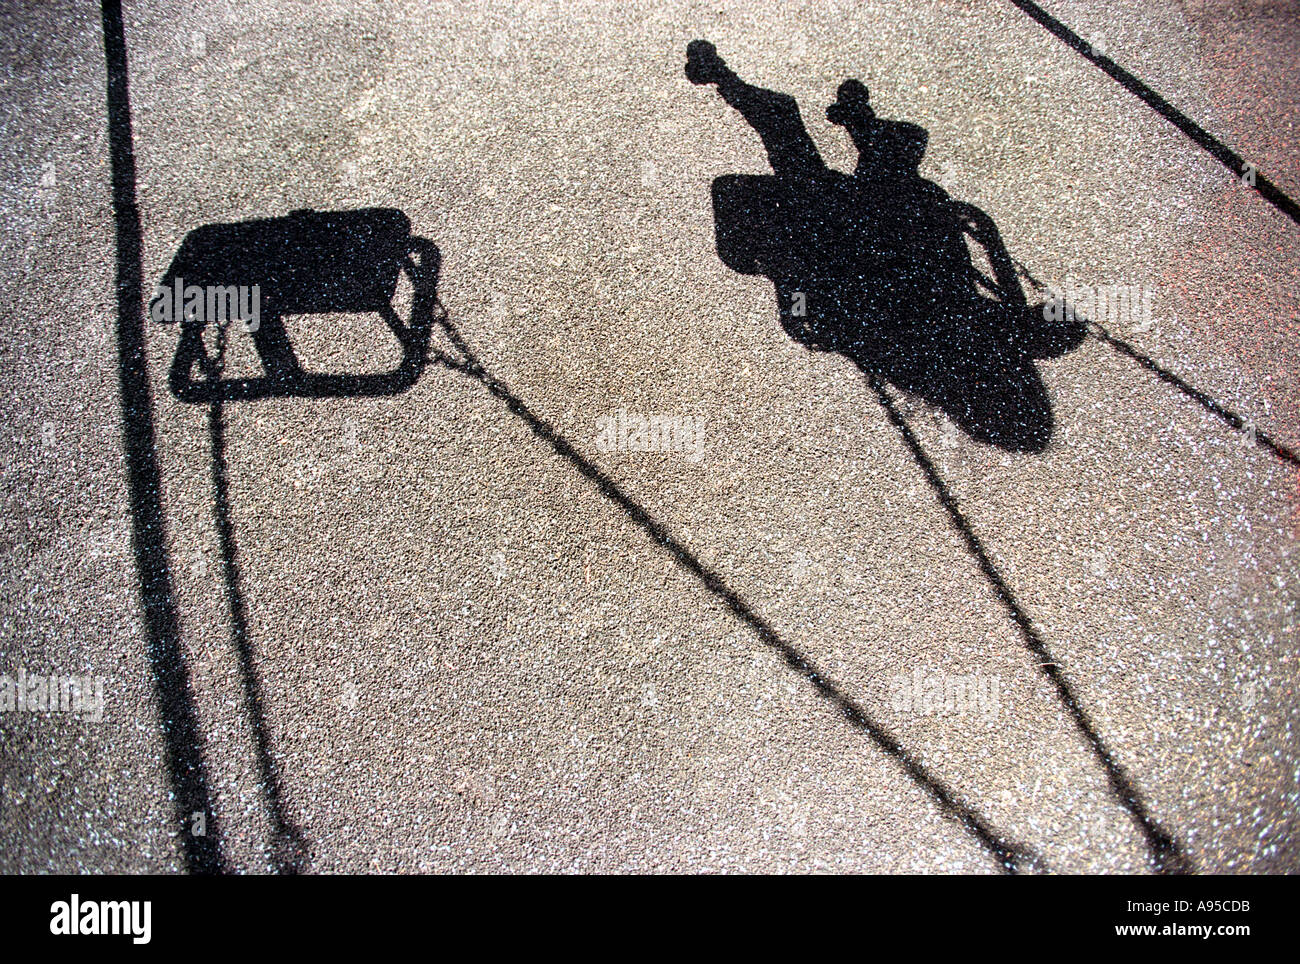 The shadow of a young girl or boy playing on a swing - Stock Image